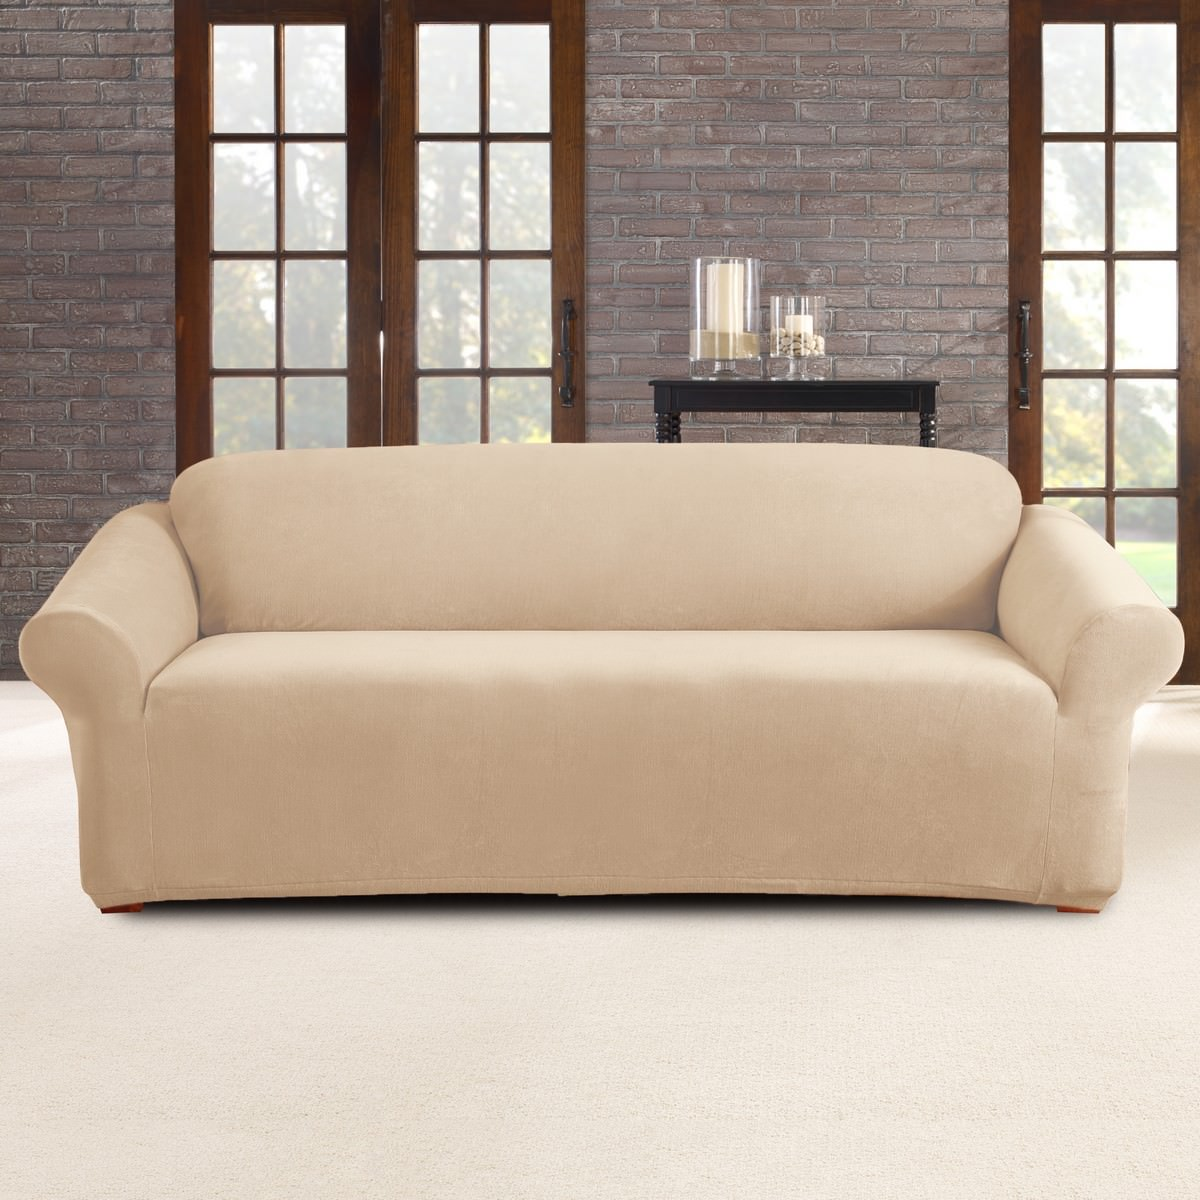 Sure Fit Stretch Pearson Sofa Cover, 3 Seater, Ivory